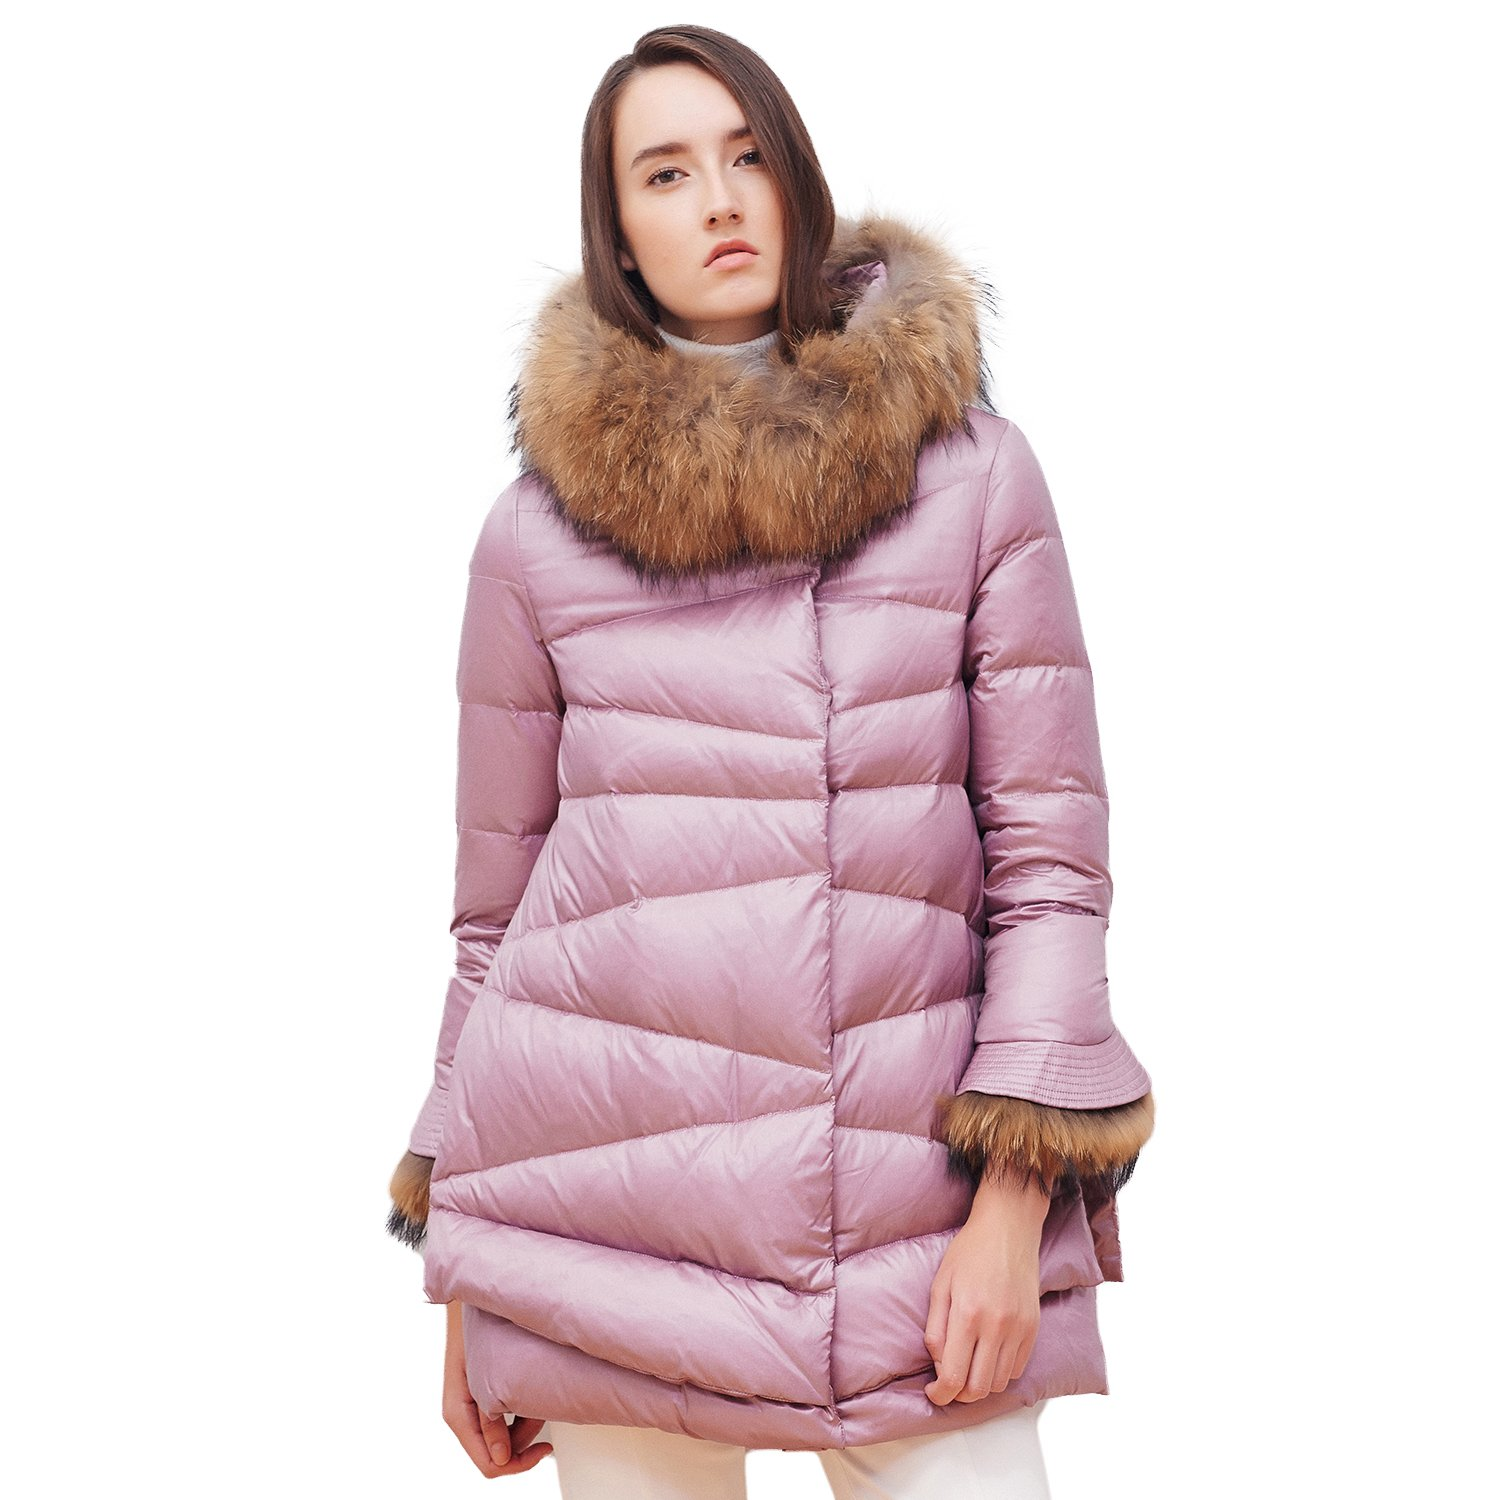 BOSIDENG Women's Winter Thick Down Coat Real Fur Hooded Detachable Fur Cuff Cloak Style Down Jacket Mid-Long Loose Hem Outerwear (175/96A 6045)